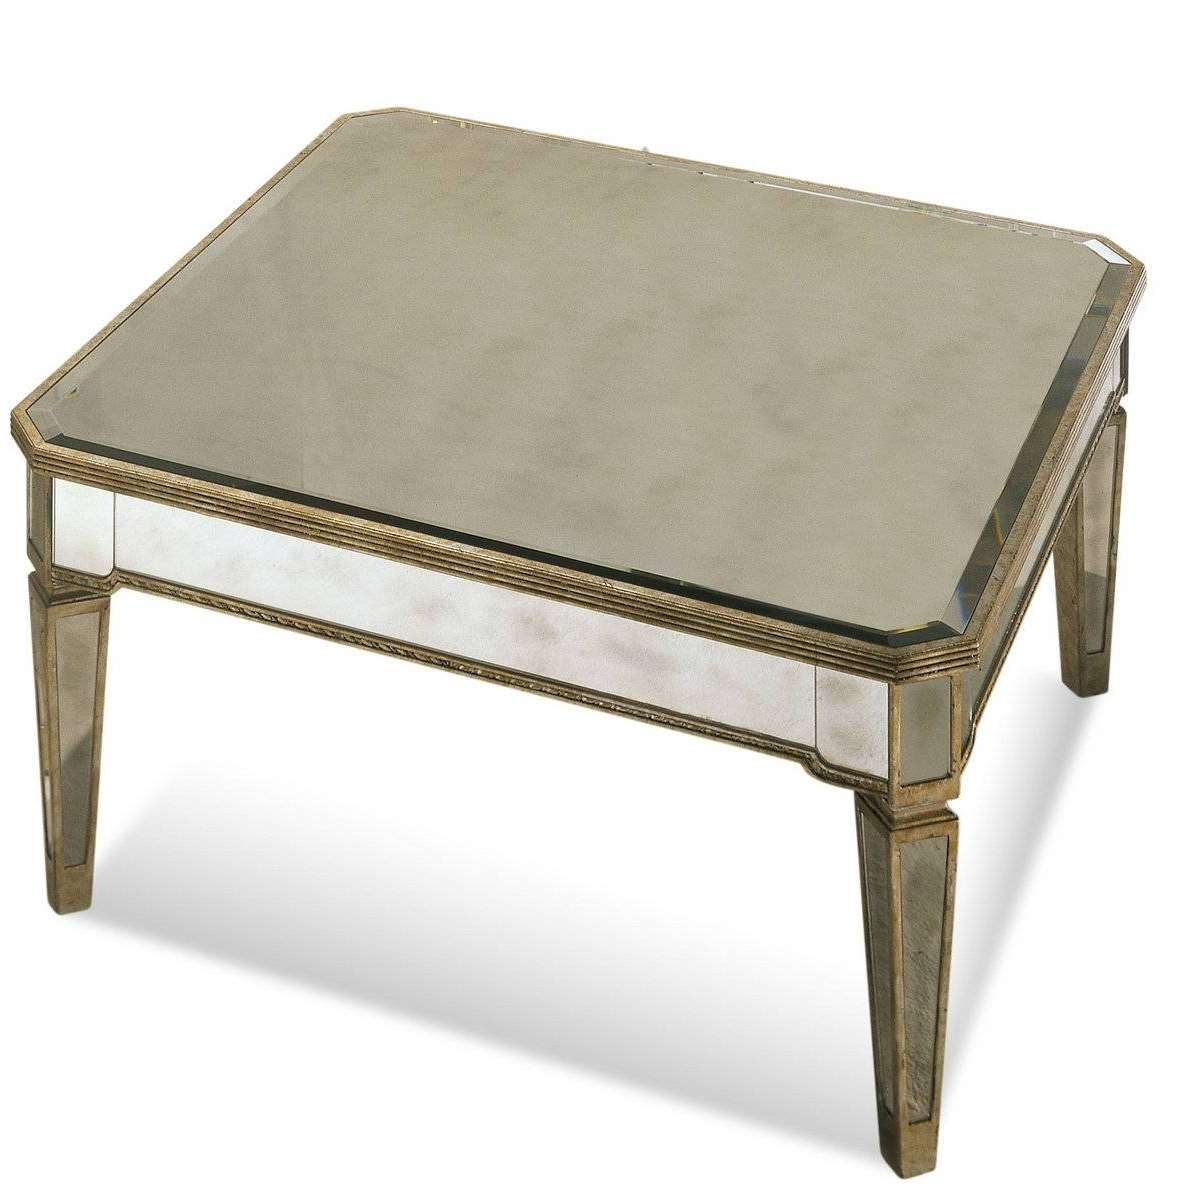 Newest Small Mirrored Coffee Tables Pertaining To Antique Mirrored Coffee Table Home Design (View 16 of 20)